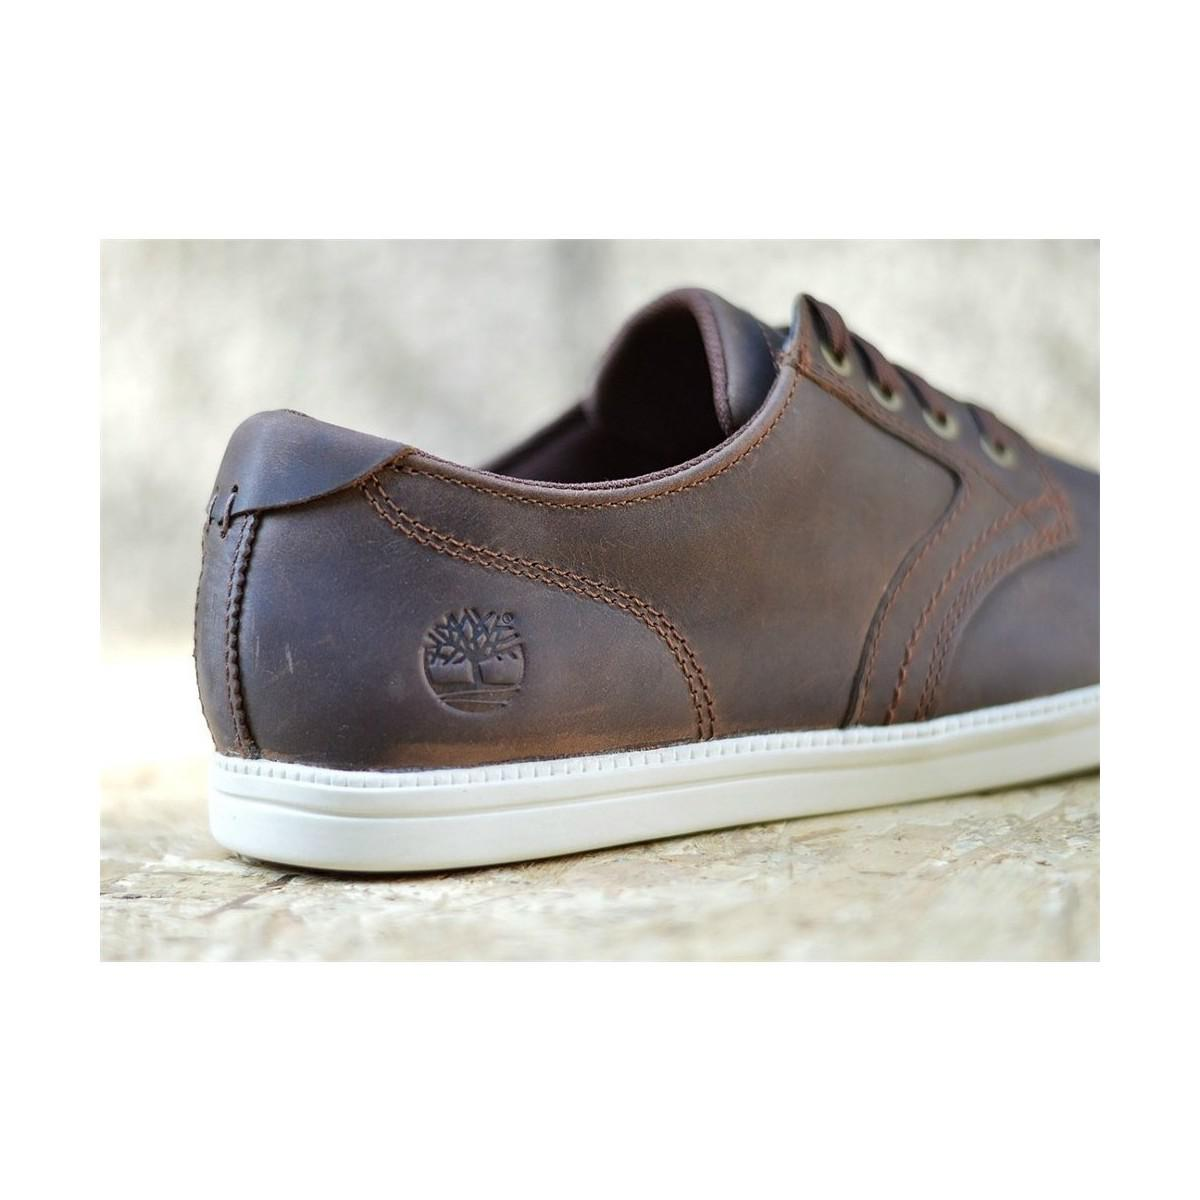 Lp Timberland Brown Men's Fulk Ox ShoestrainersIn For CxstQrBhd